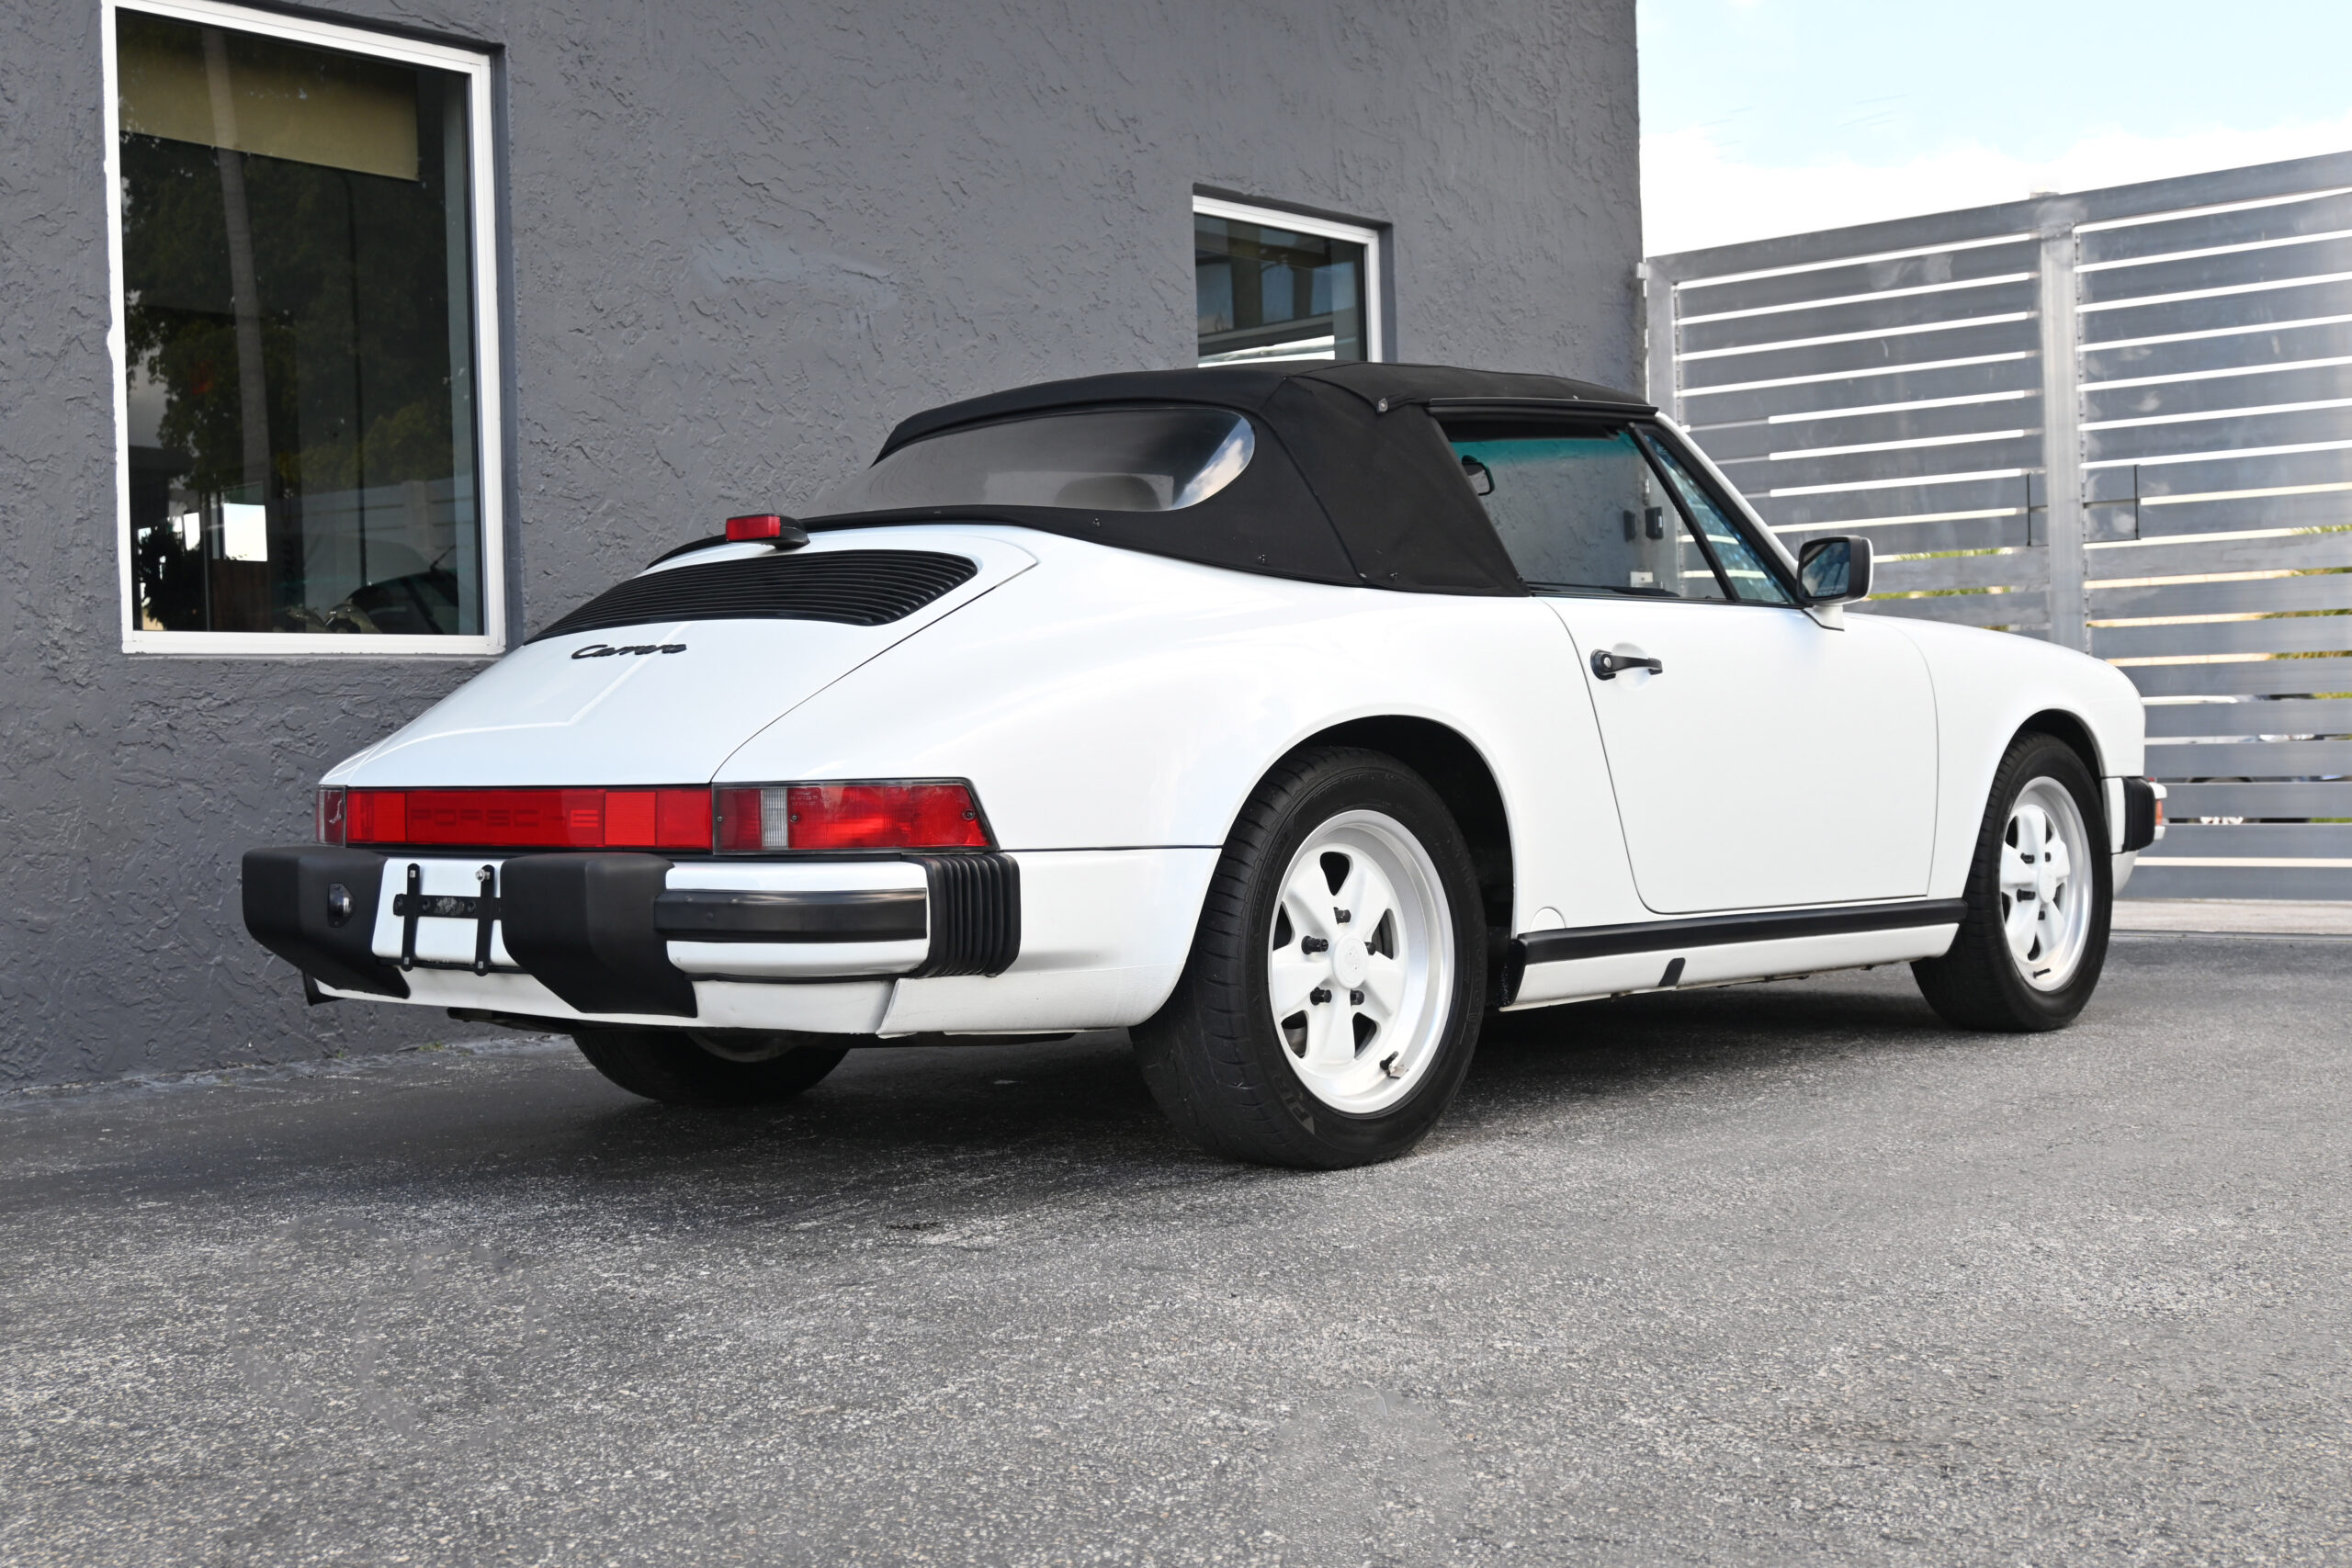 1988 Carrera Cabrio,G50, low miles with recent service at marque specialist, Iconic 1980's color combo, outstanding condition, tools.